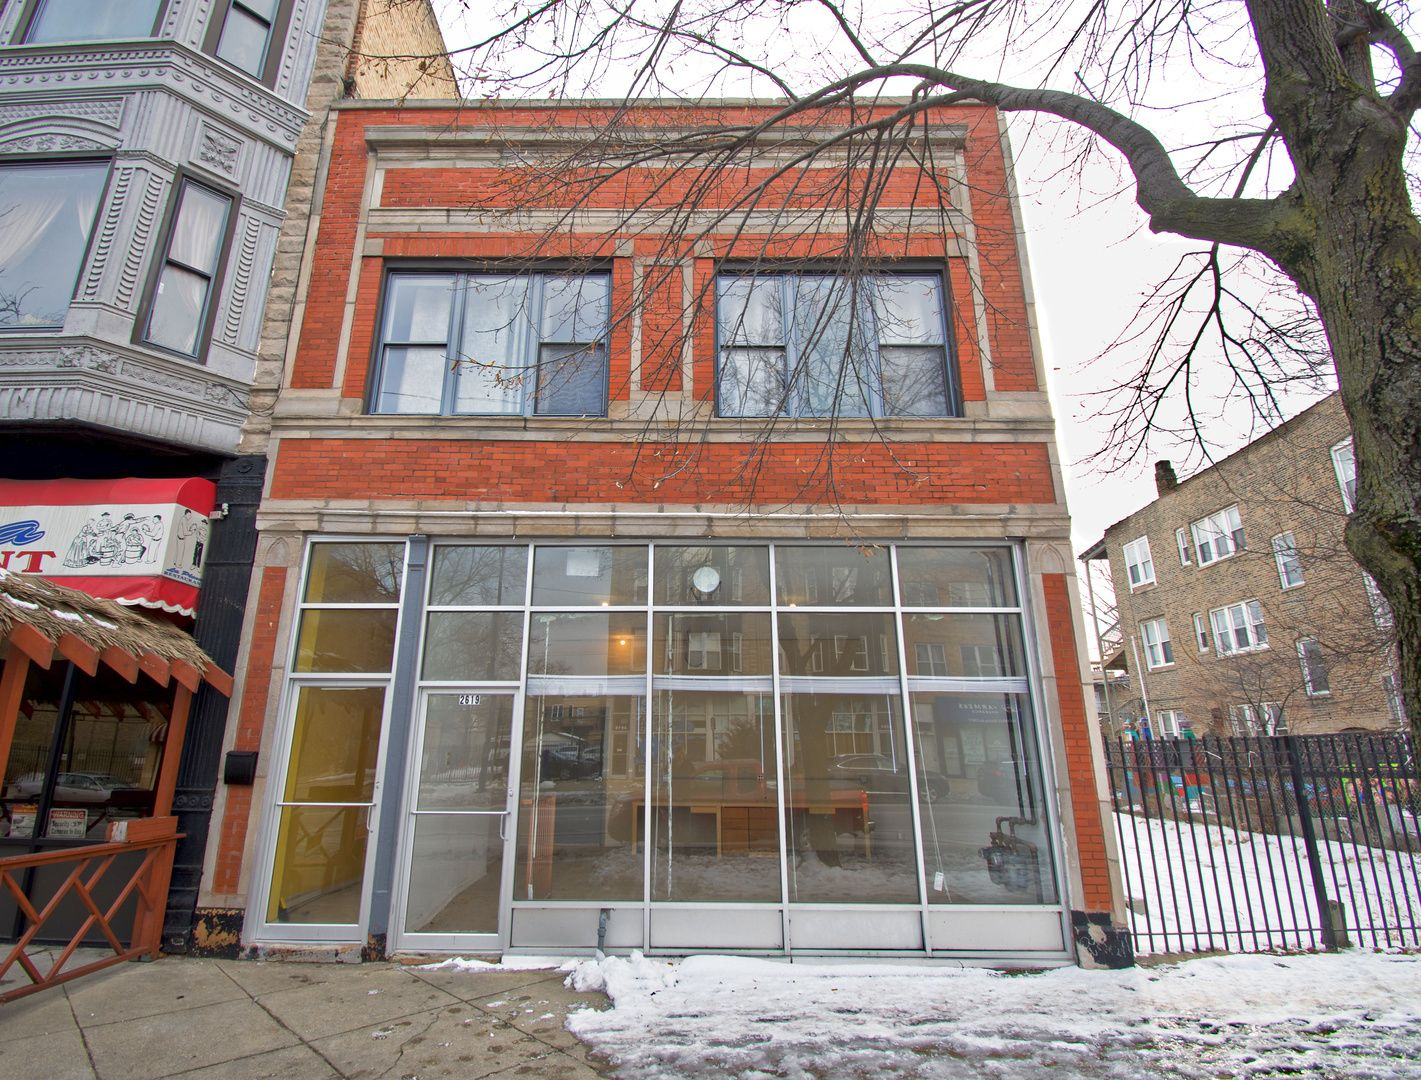 Main Photo: 2619 W Division Street in Chicago: CHI - West Town Commercial Sale for sale ()  : MLS®# 11017067